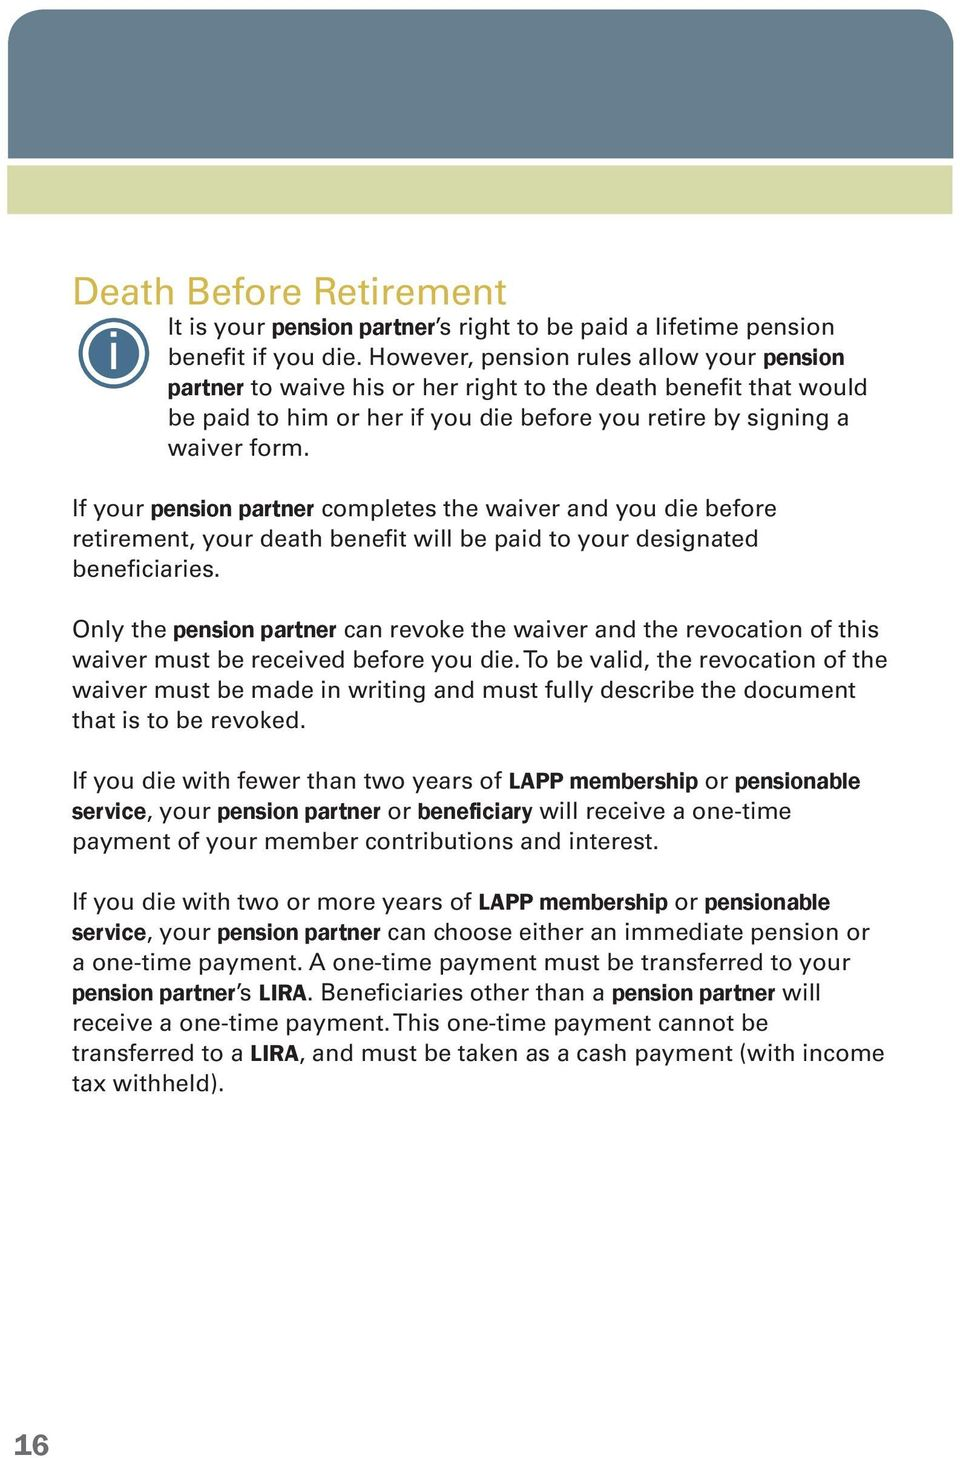 If your pension partner completes the waiver and you die before retirement, your death benefit will be paid to your designated beneficiaries.